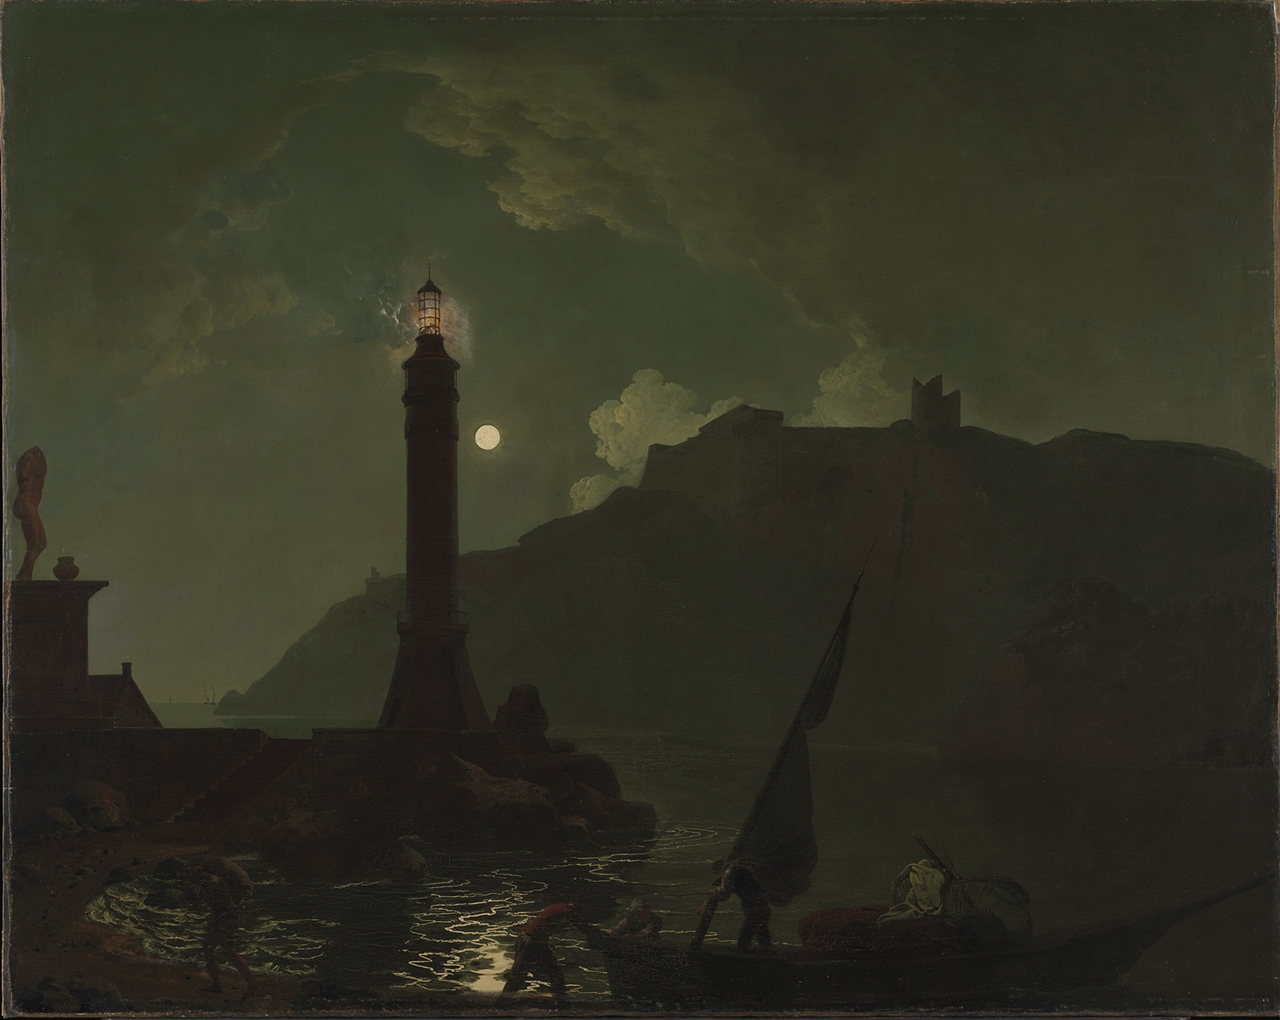 Joseph Wright of Derby,A Moonlight with a Lighthouse, Coast of Tuscany image